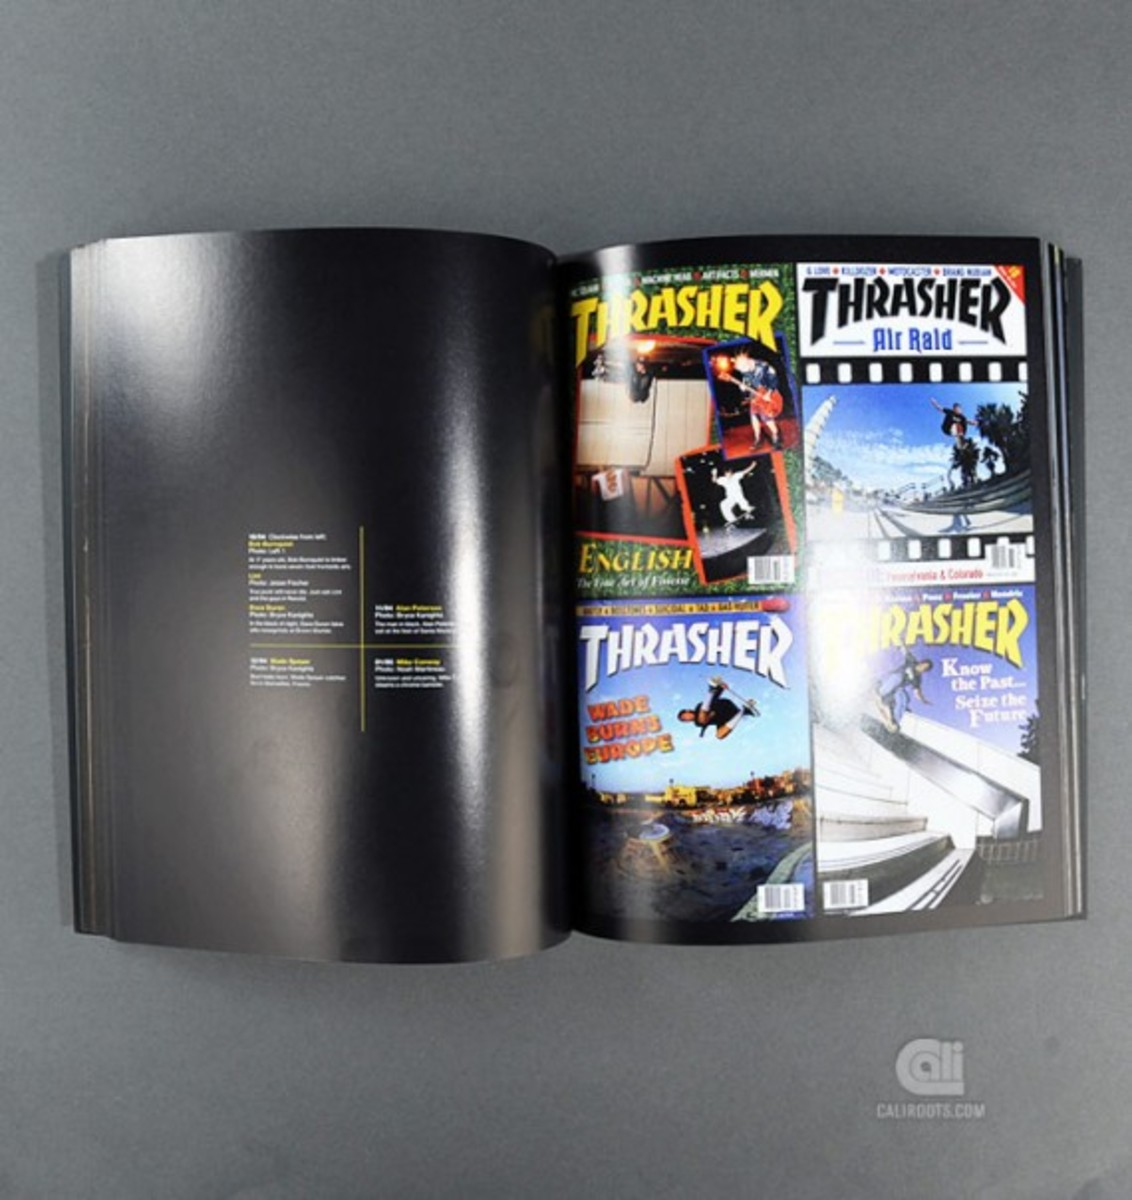 maximum-rad-the-iconic-covers-of-thrasher-magazine-book-by-rizzoli-04